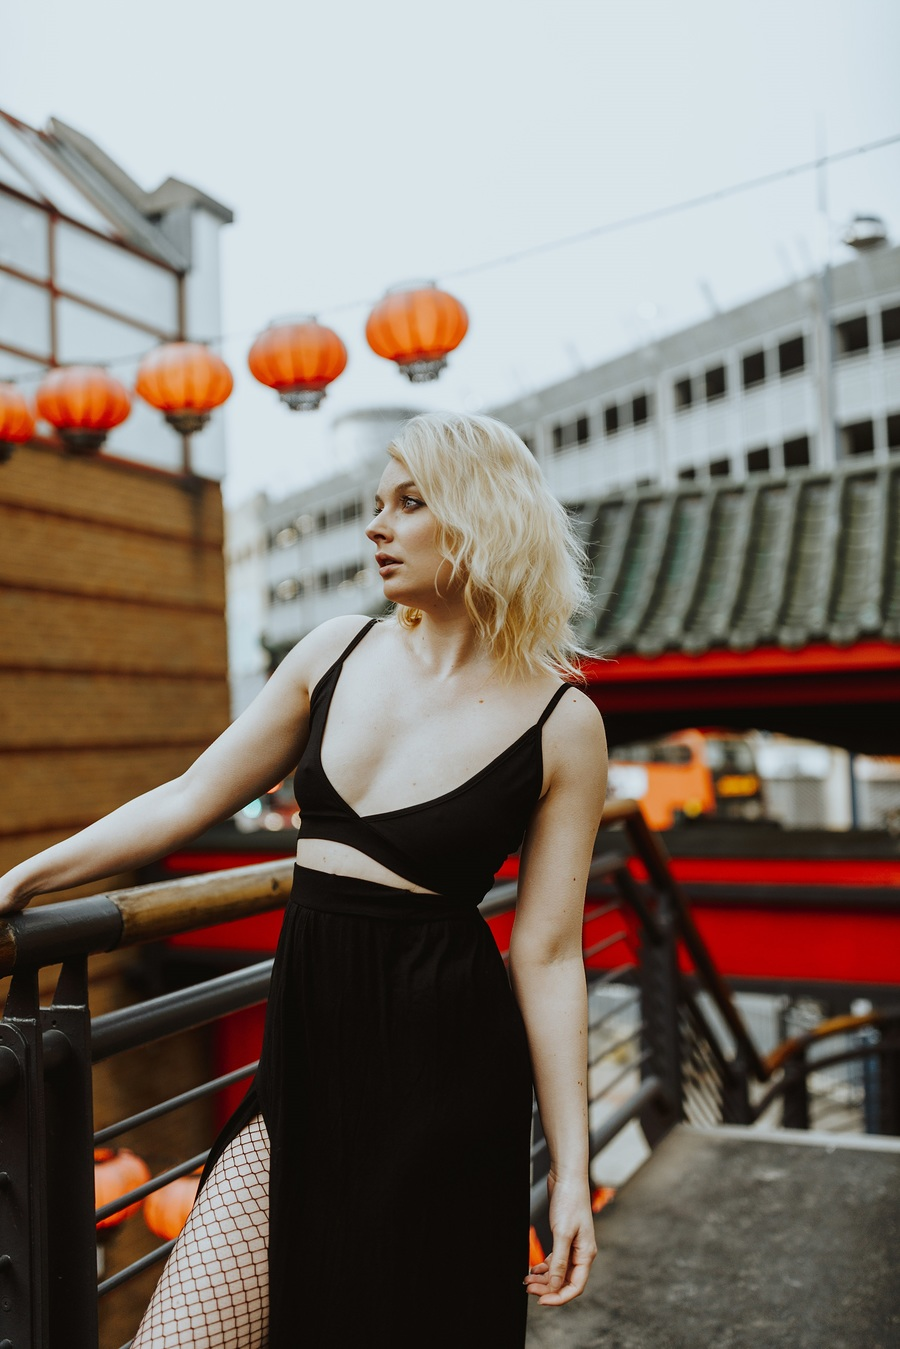 China Town / Model Holly Alexander / Uploaded 8th April 2018 @ 06:01 PM